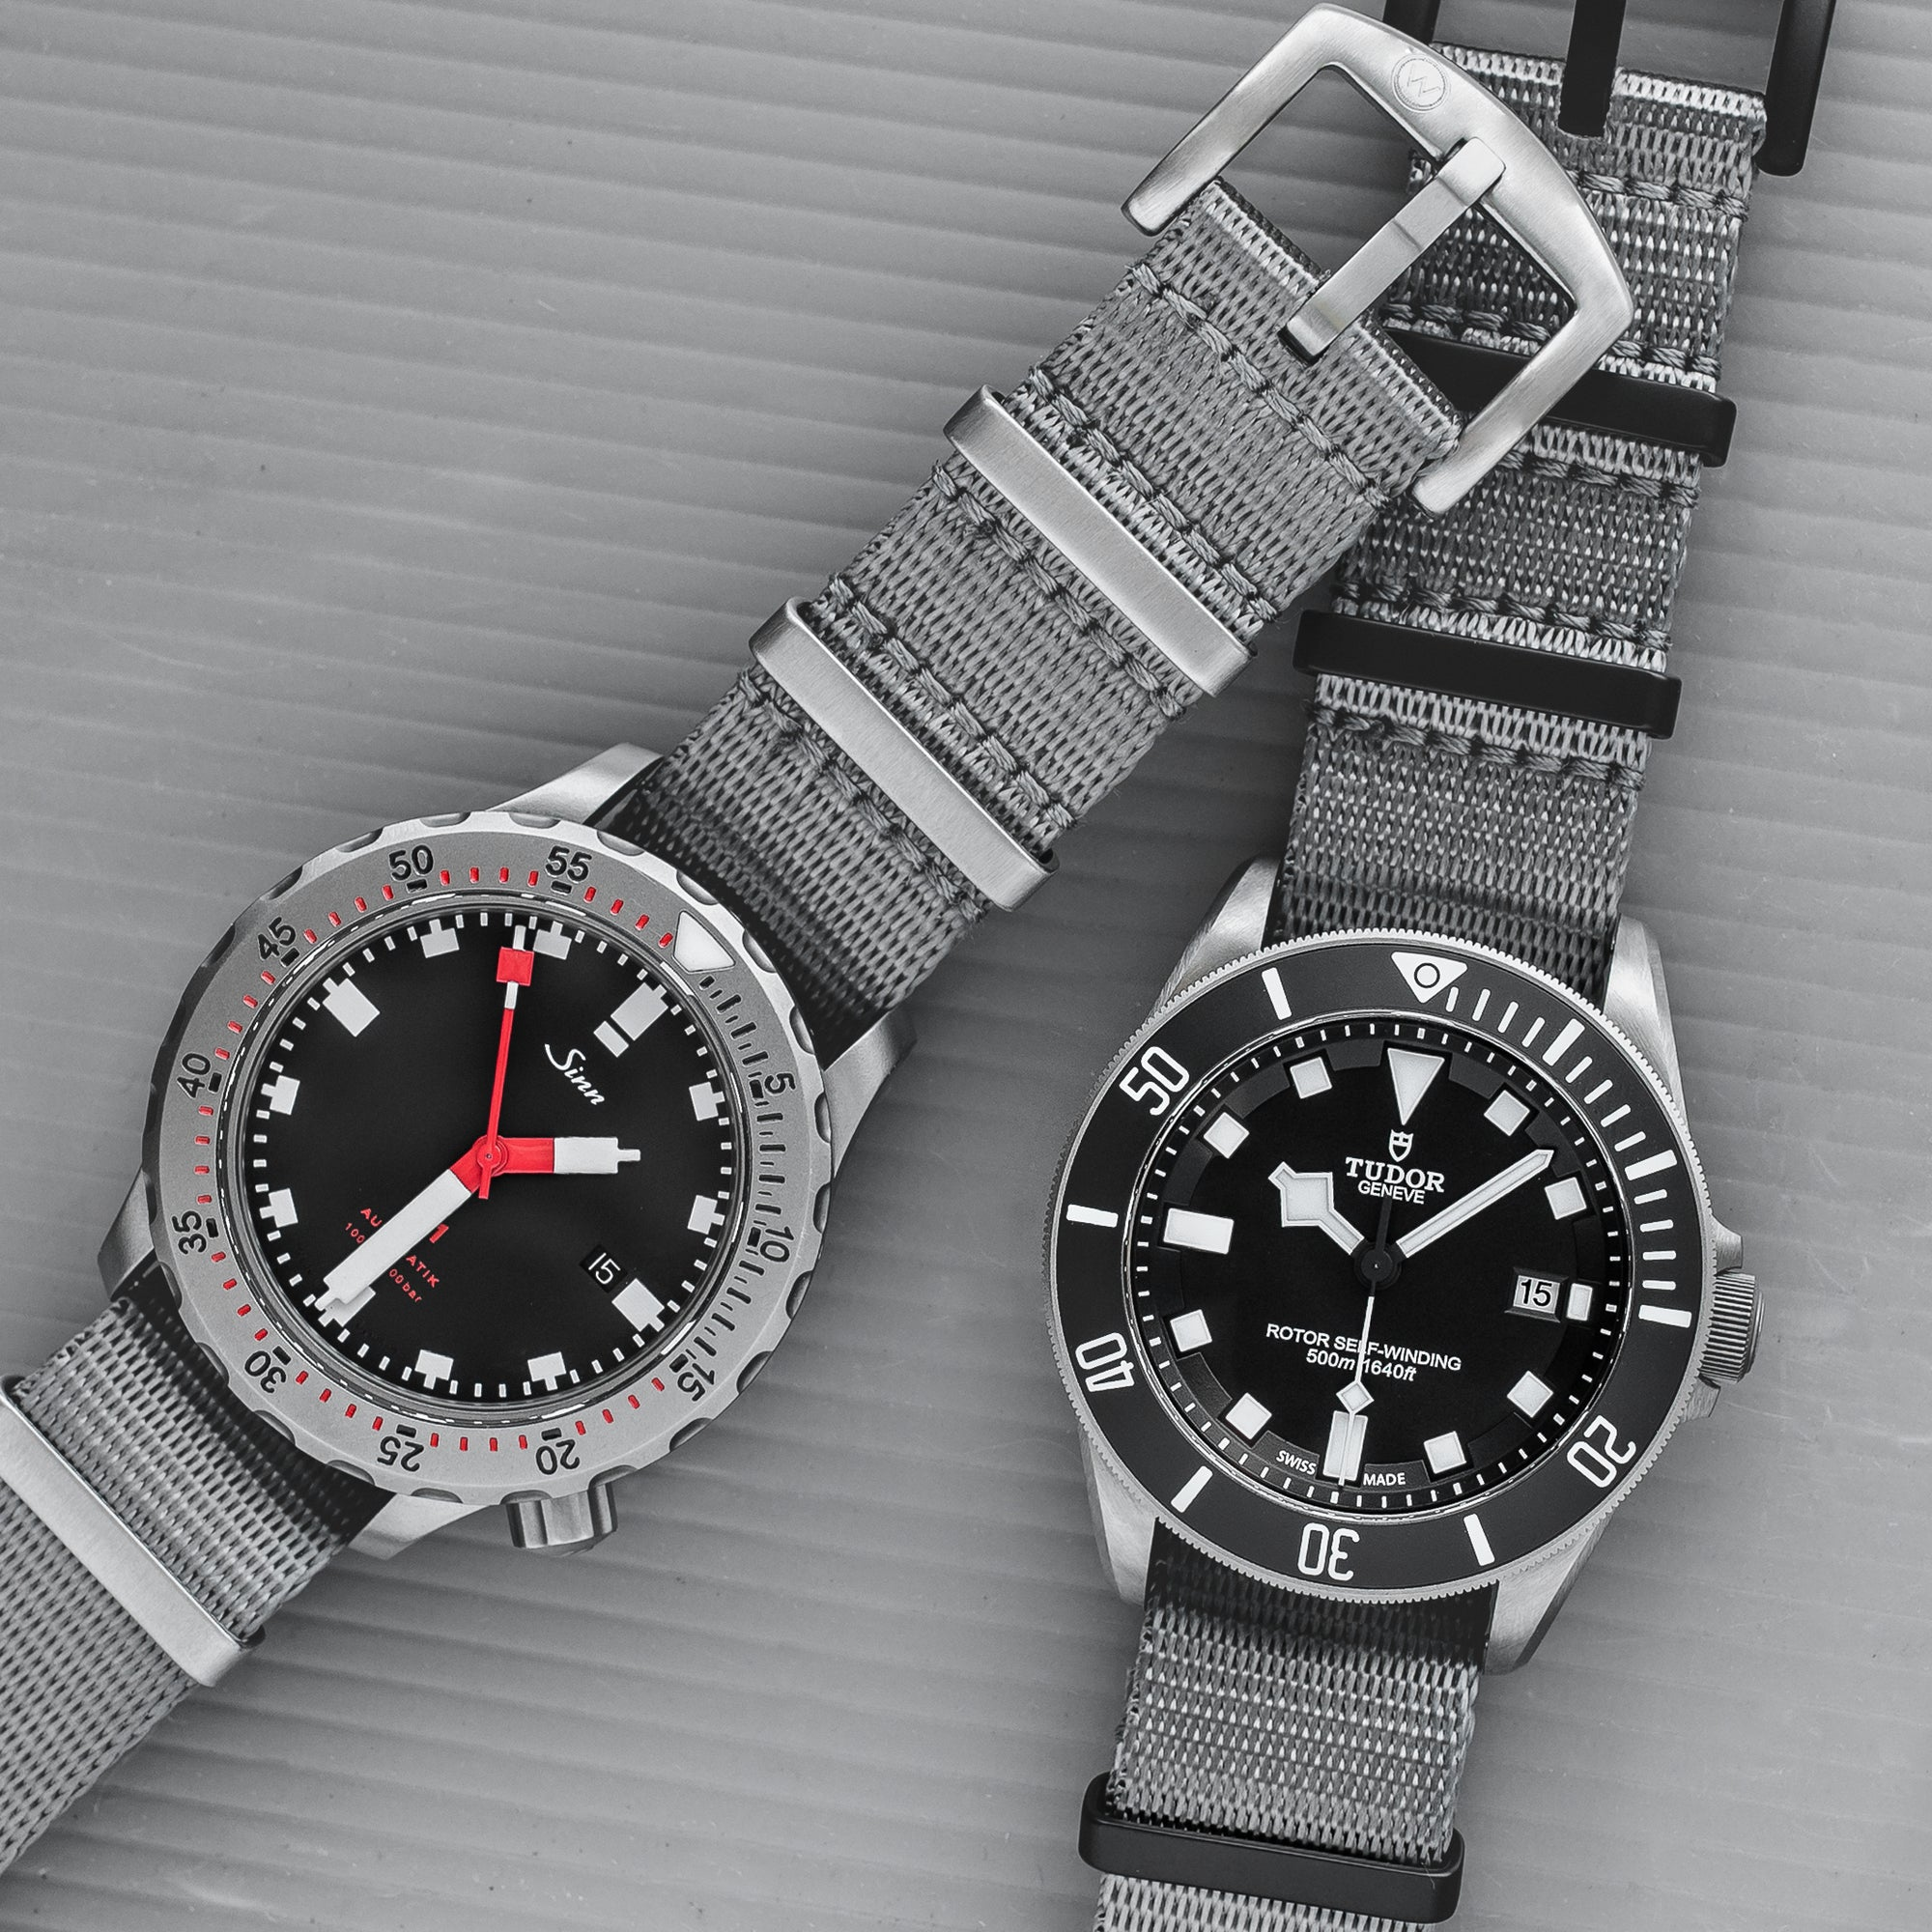 Sinn and Tudor watches both with seat belt nato straps fitted